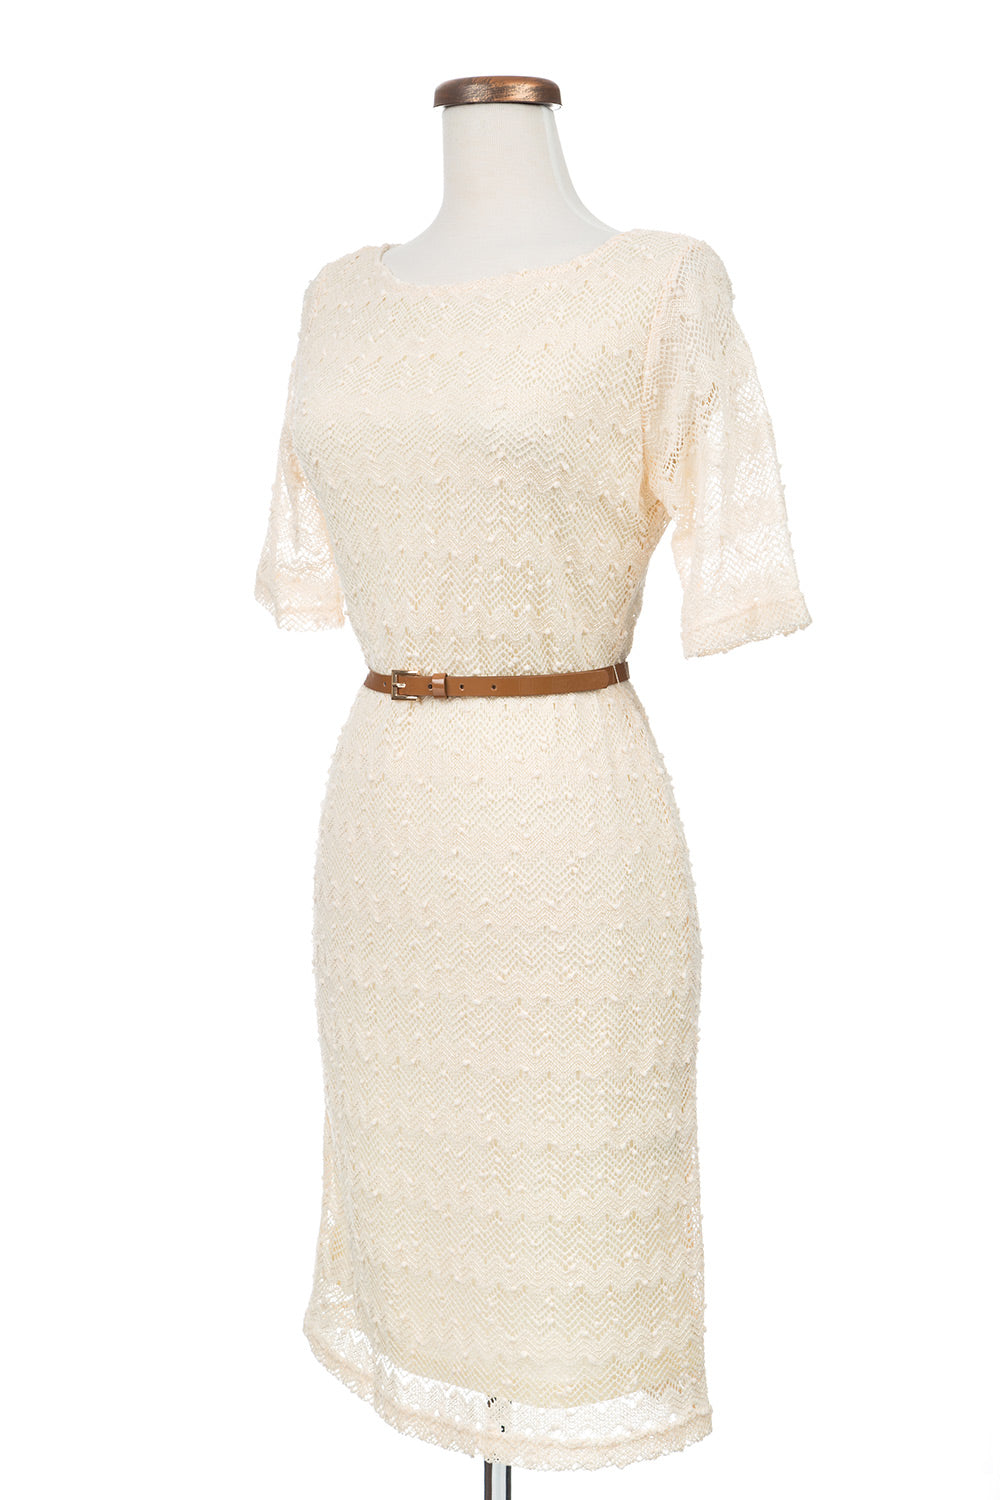 Type 3 Cream of the Crop Dress